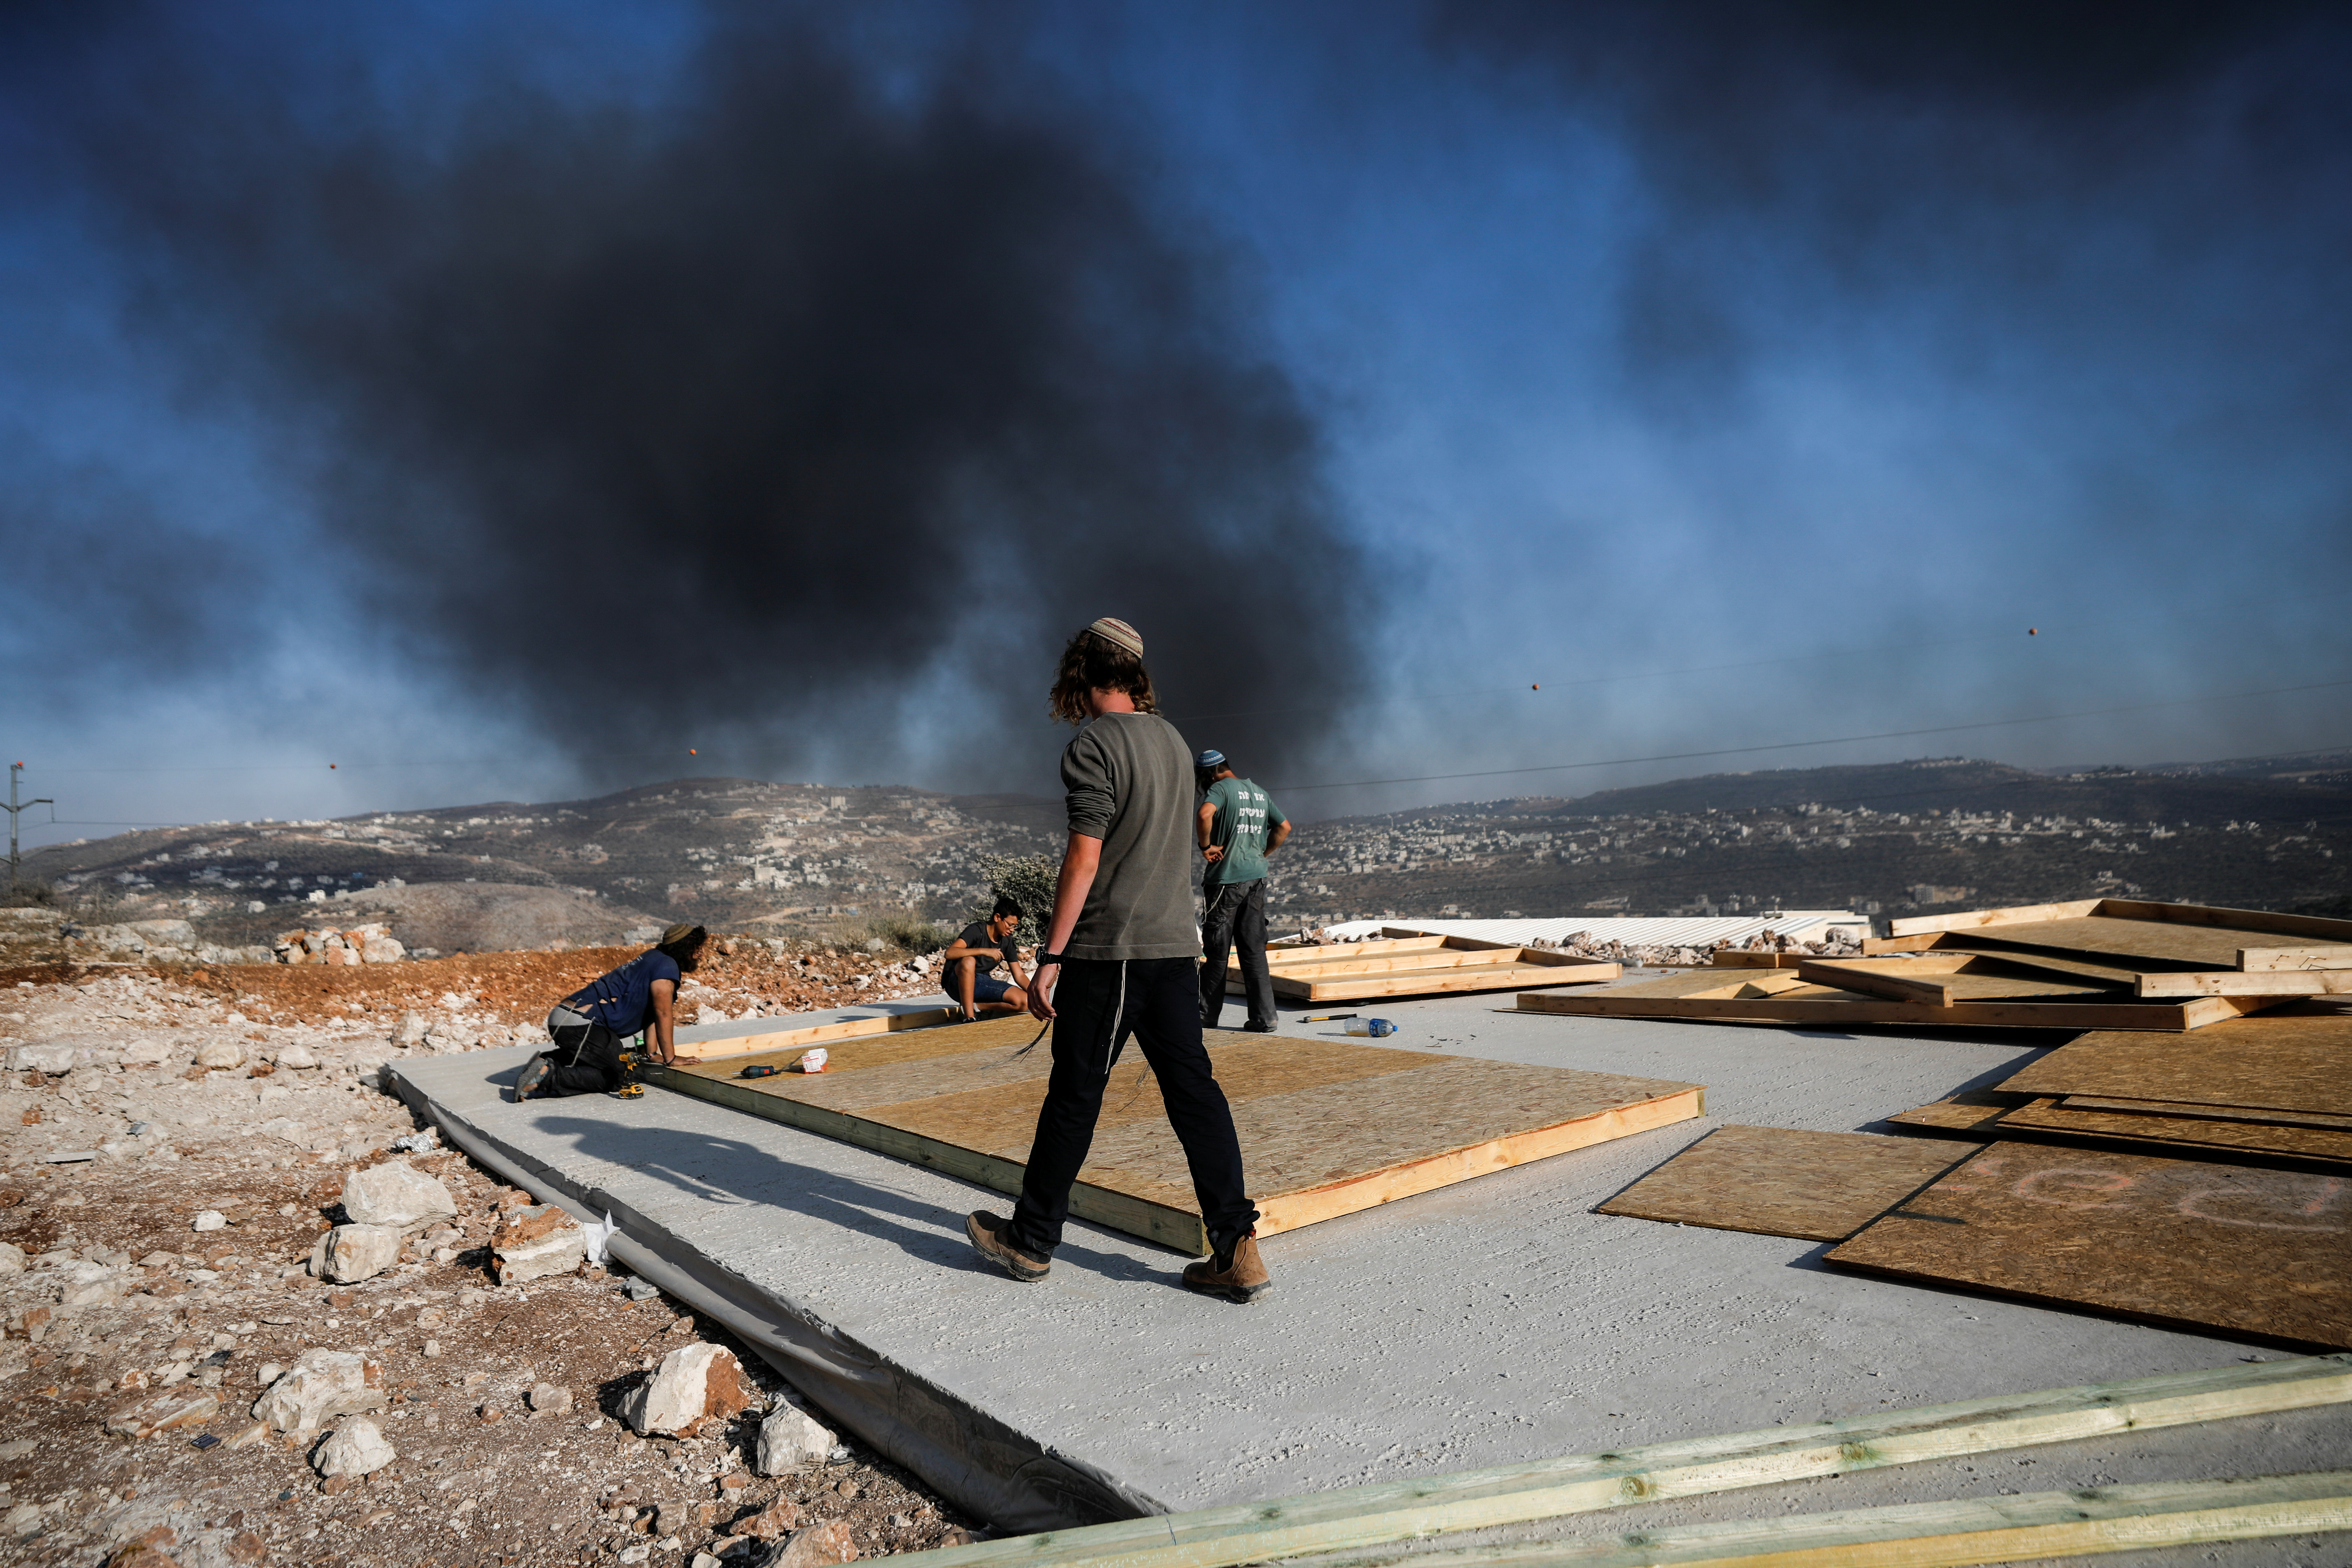 Israeli gov't and settlers reach deal over West Bank outpost, Pal